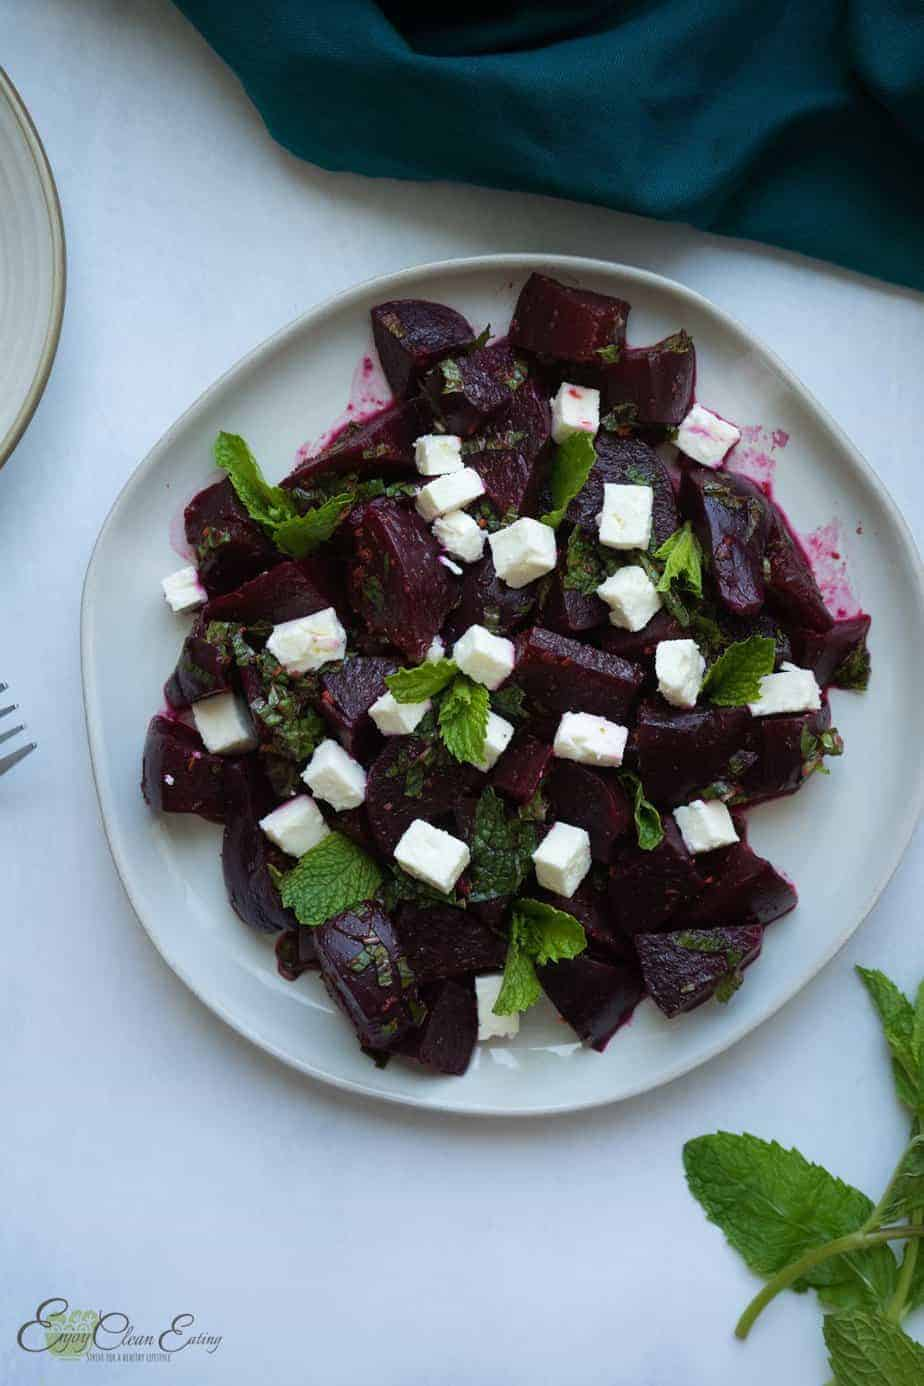 beet salad with feta cheese on a plate. a fork, small serving plate and napkins